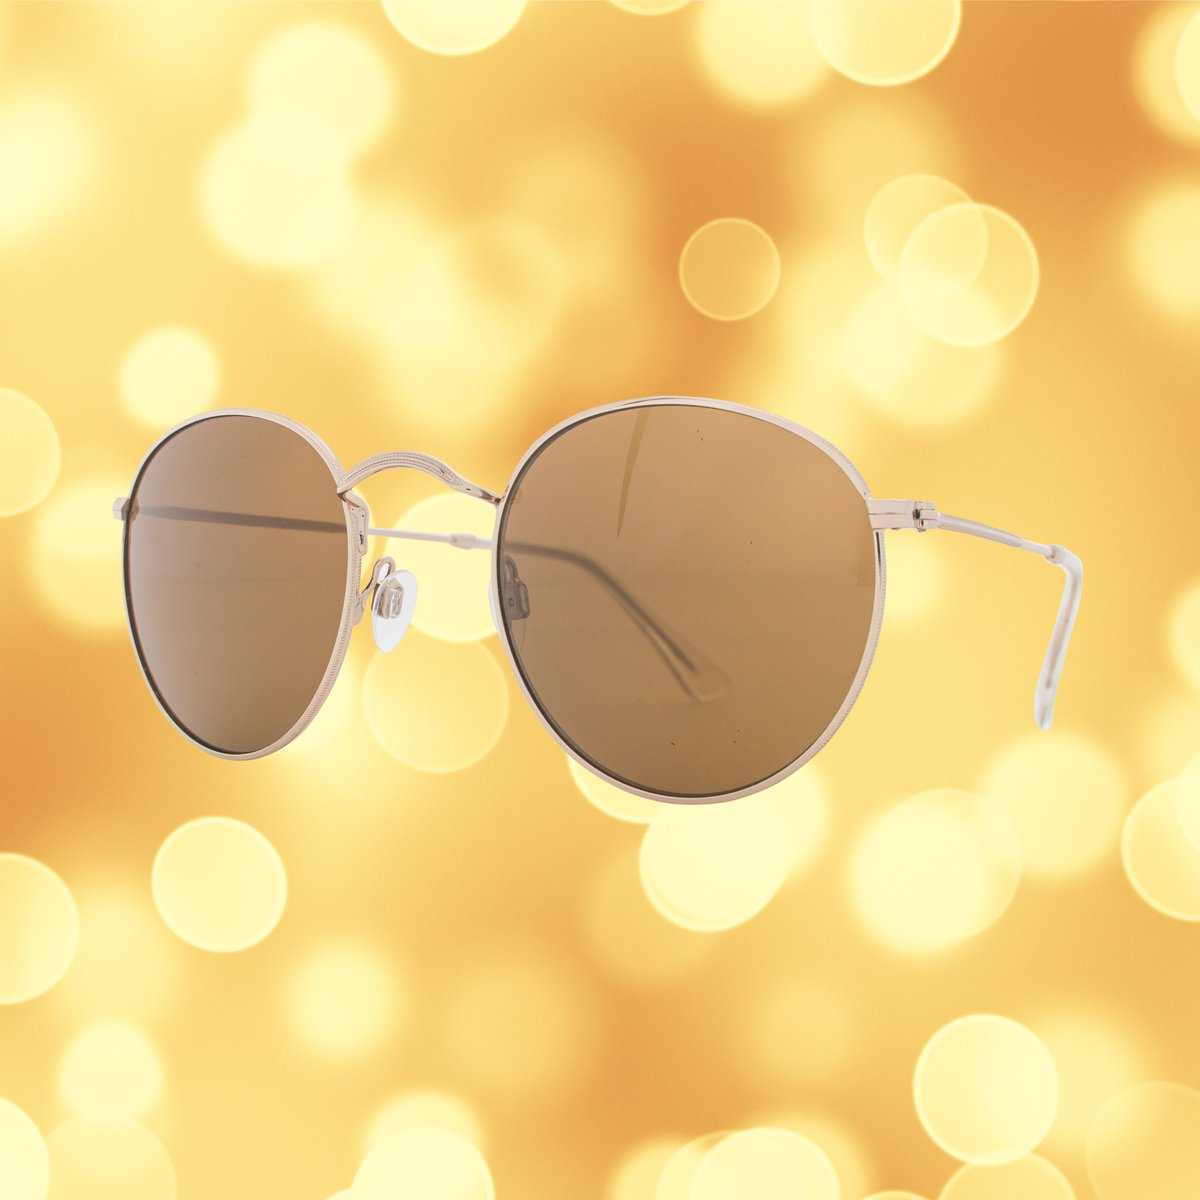 Jcpenney Optical On Twitter Get Festival Ready With These